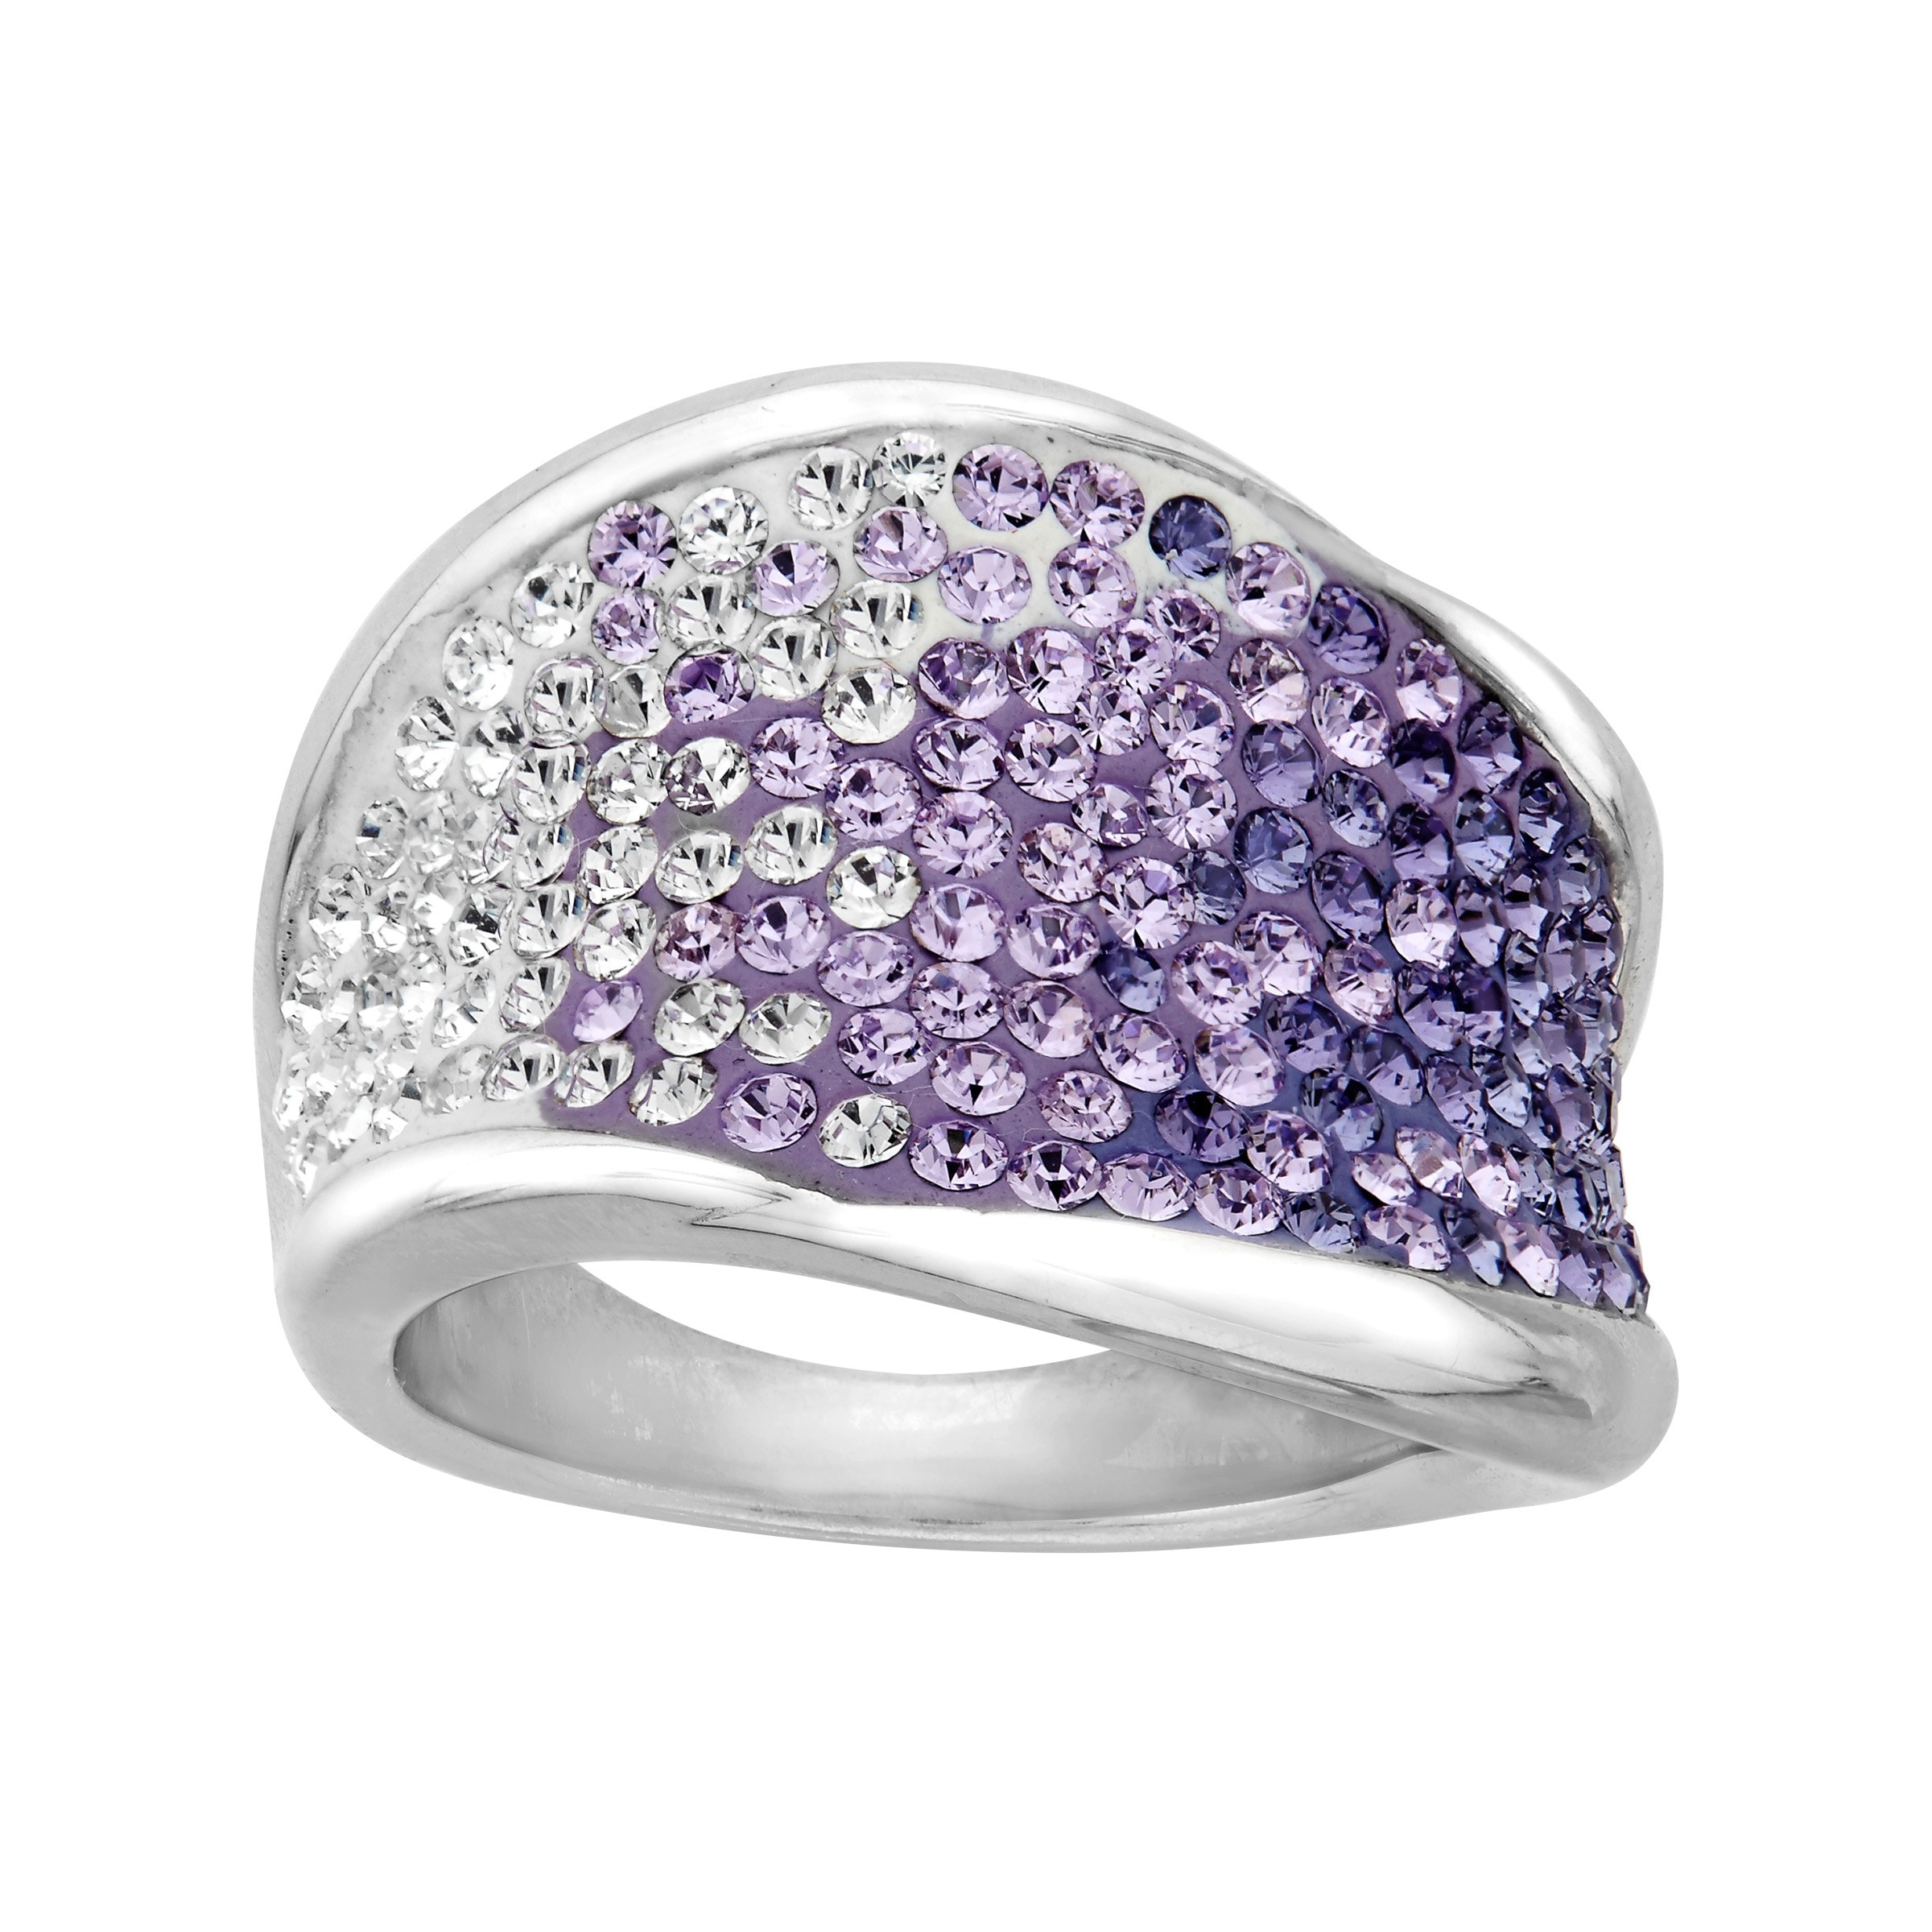 Ring with Lavender /& Lilac Swarovski Crystal in Sterling Silver